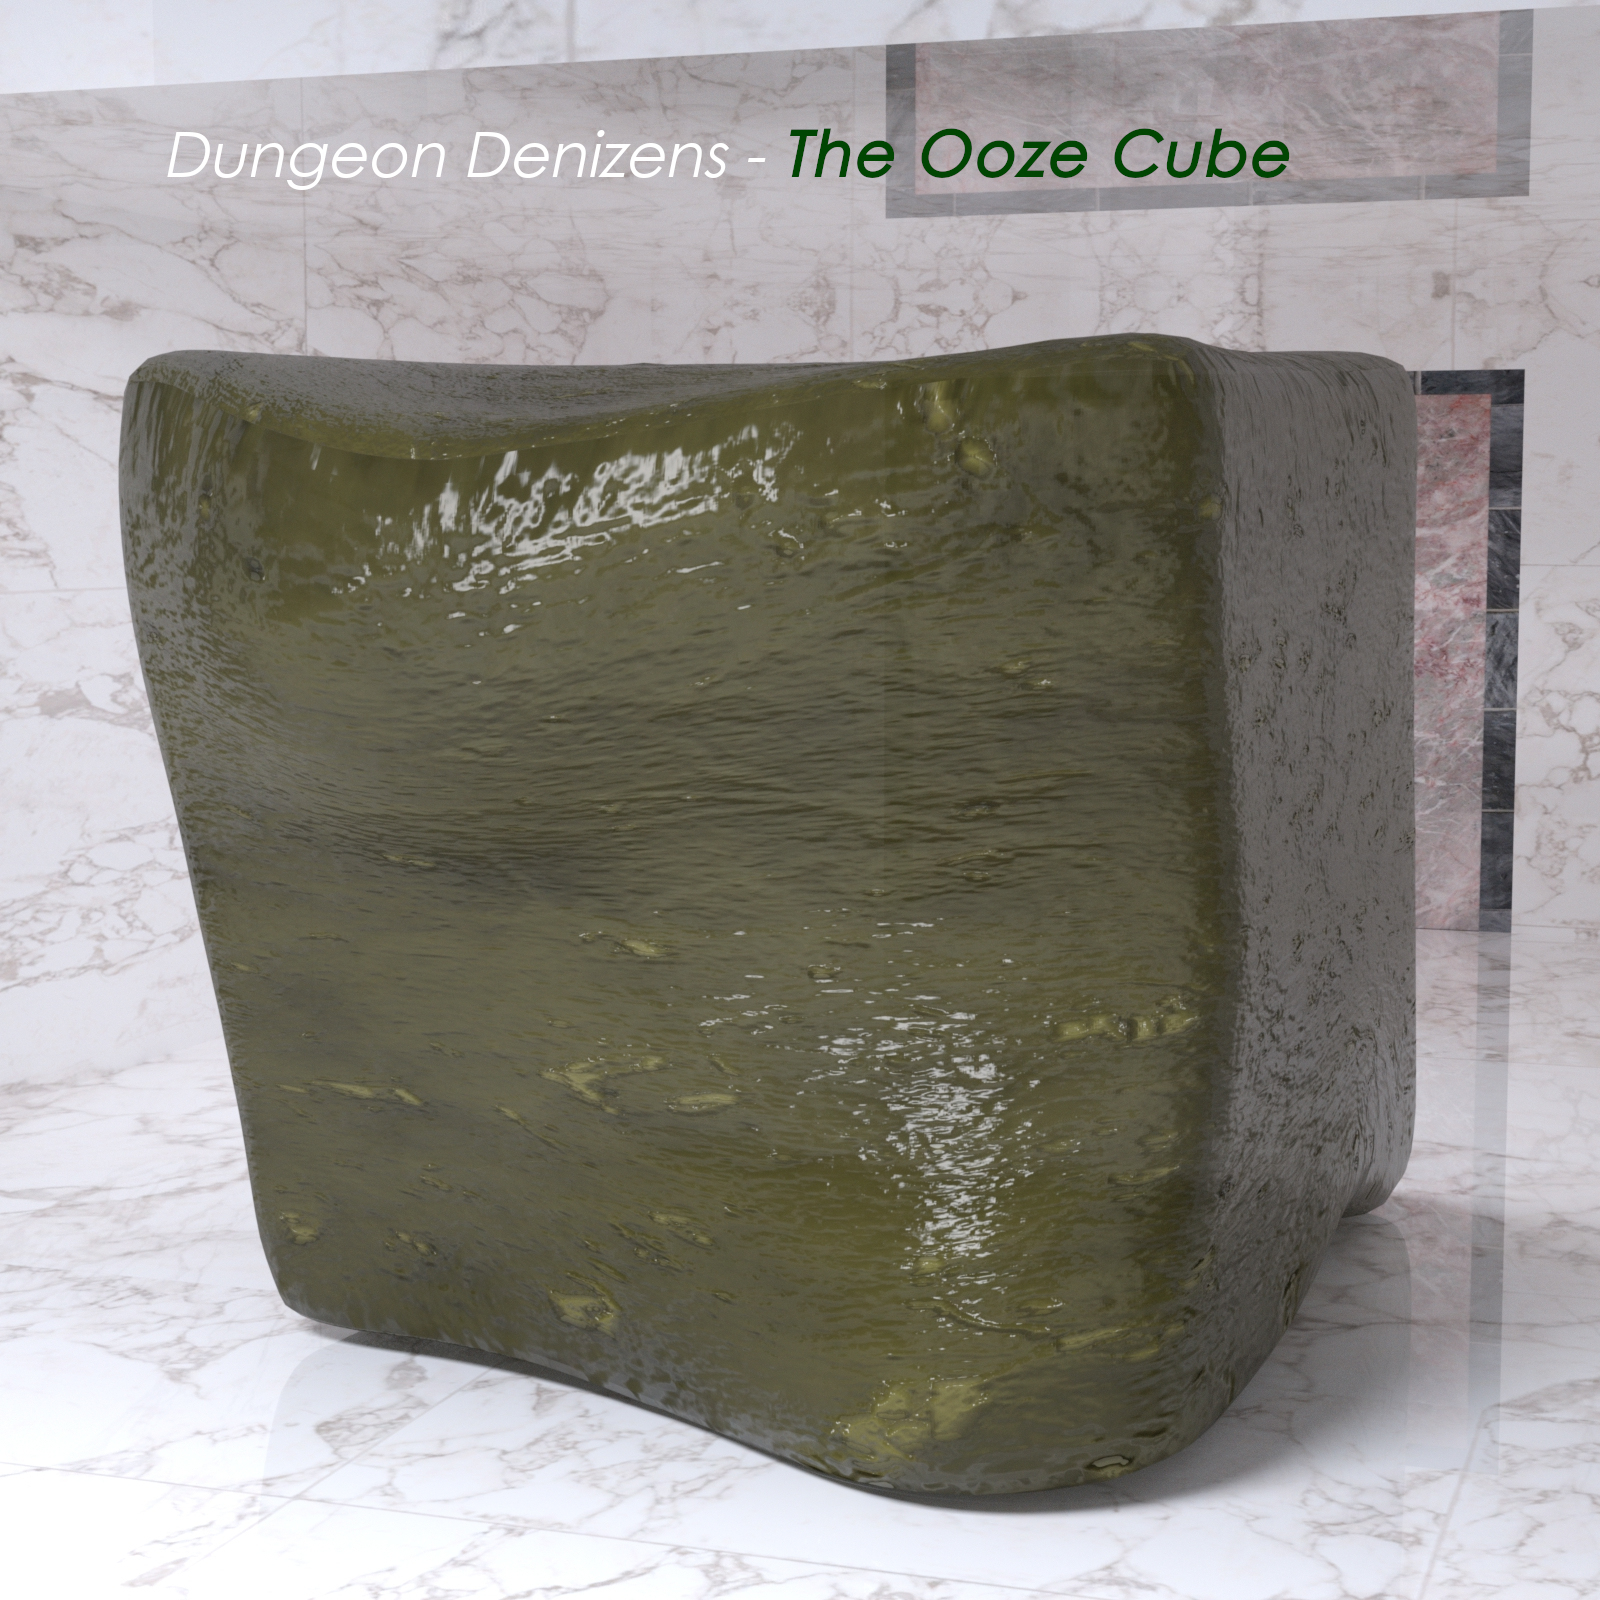 Dungeon Denizens - The Ooze Cube